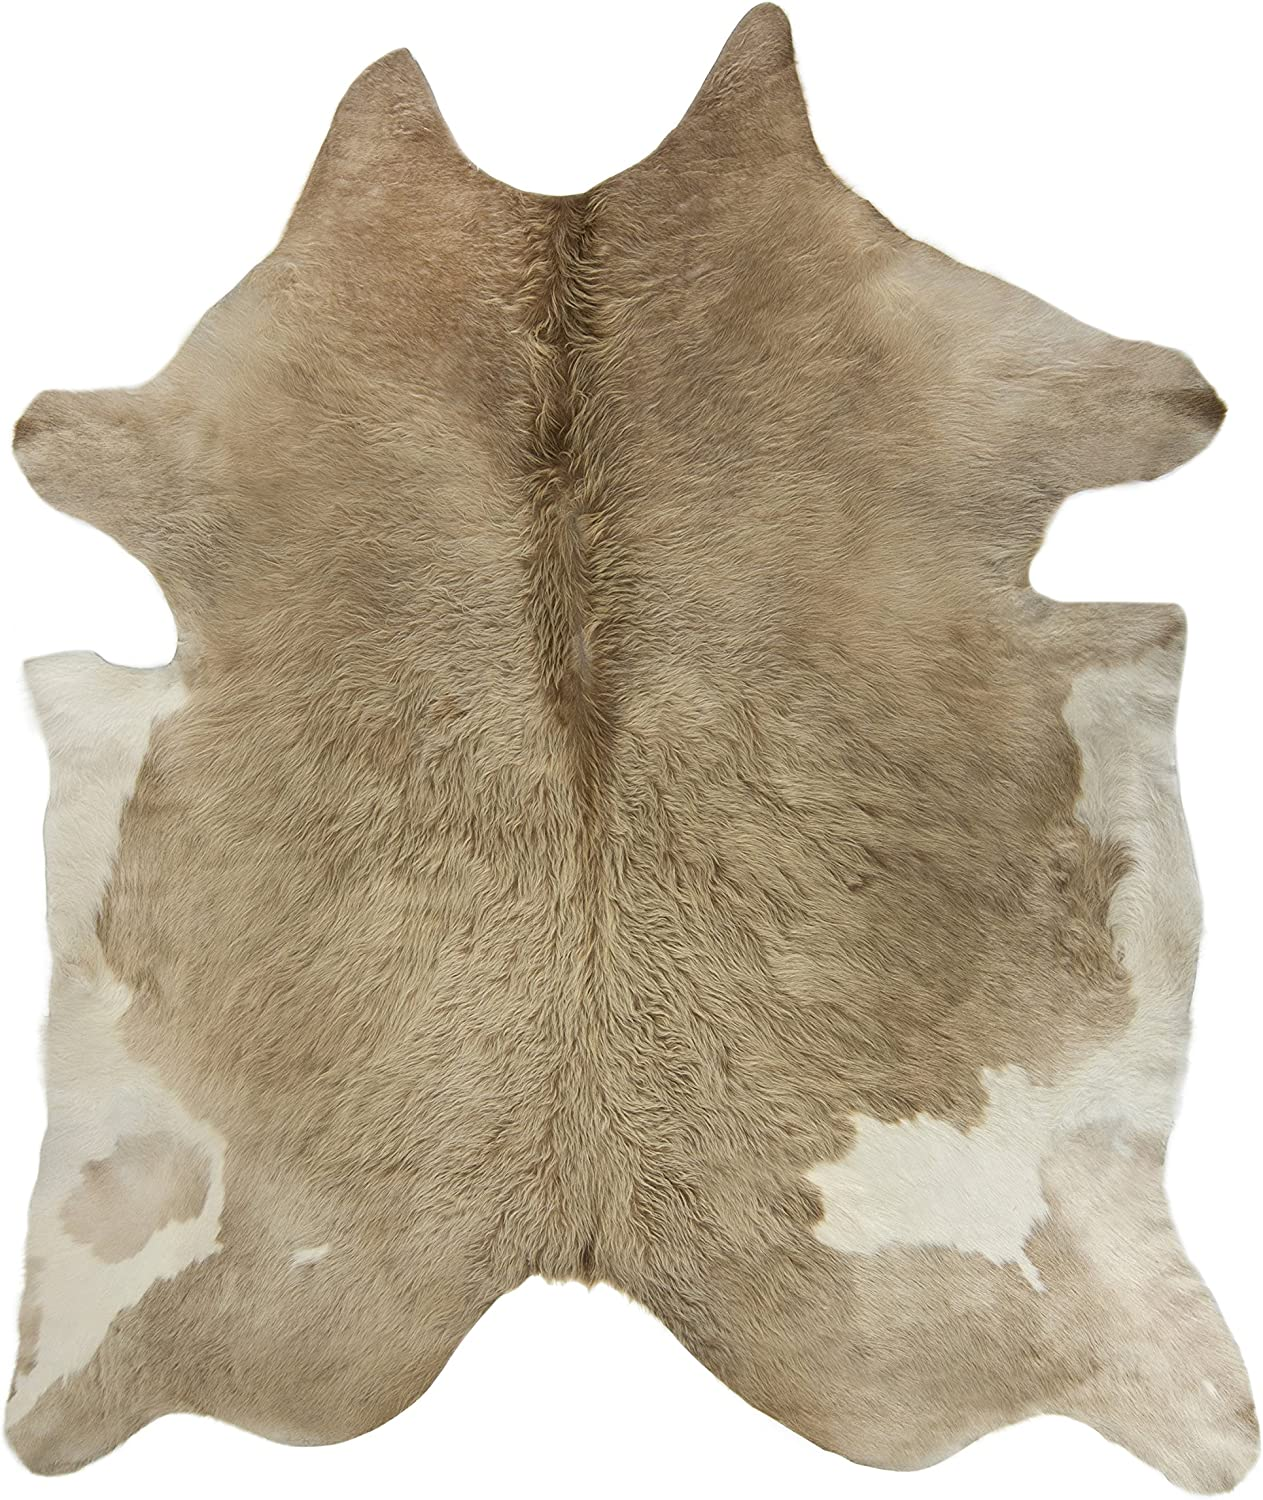 Crown Home Innovations | Brazilian Cowhide Area Rug | 100% Authentic Natural Leather | Unique Stylish Decorative Accent | No Smell or Shedding | Color, Buttercream | Size, 6'x 7'